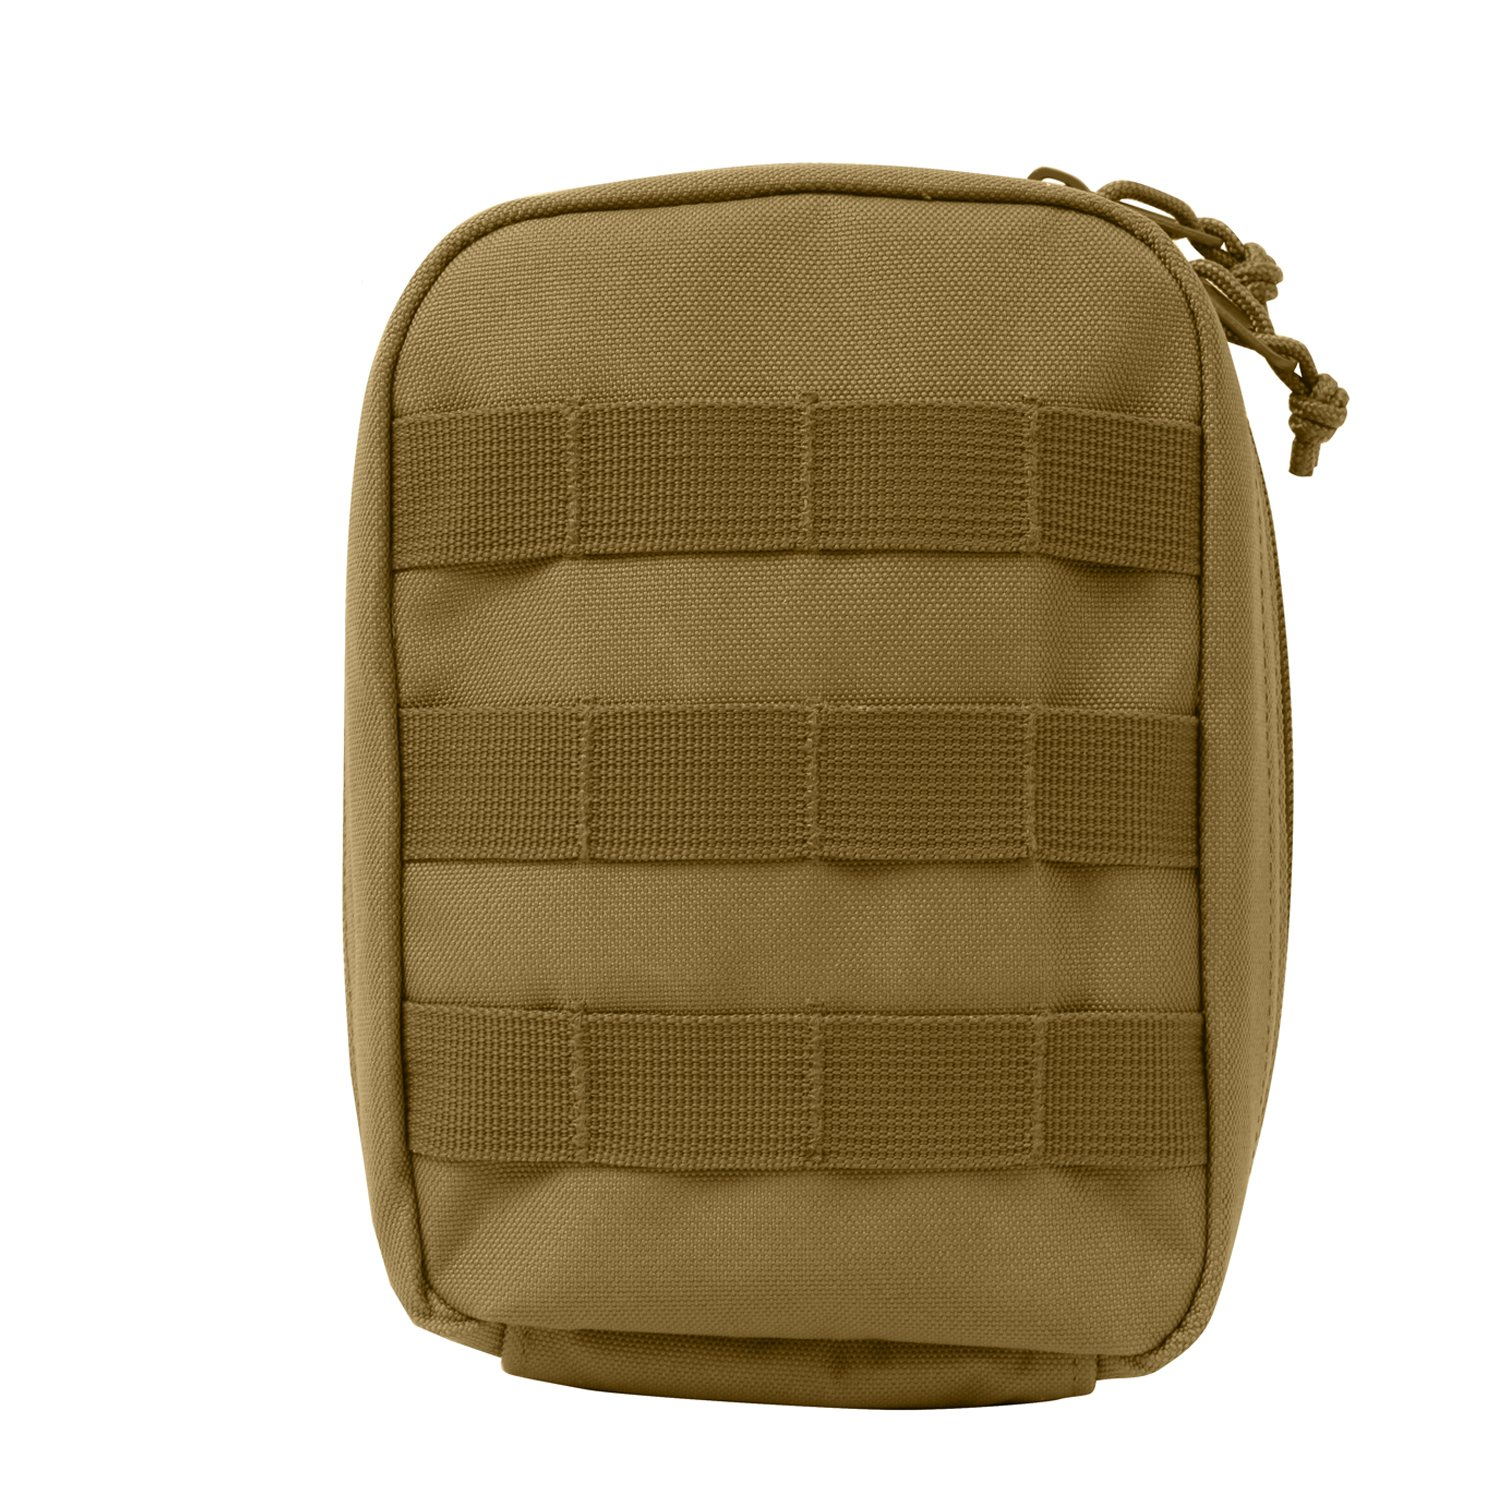 Rothco Molle Tactical Trauma Kit, Coyote by Rothco (Image #1)